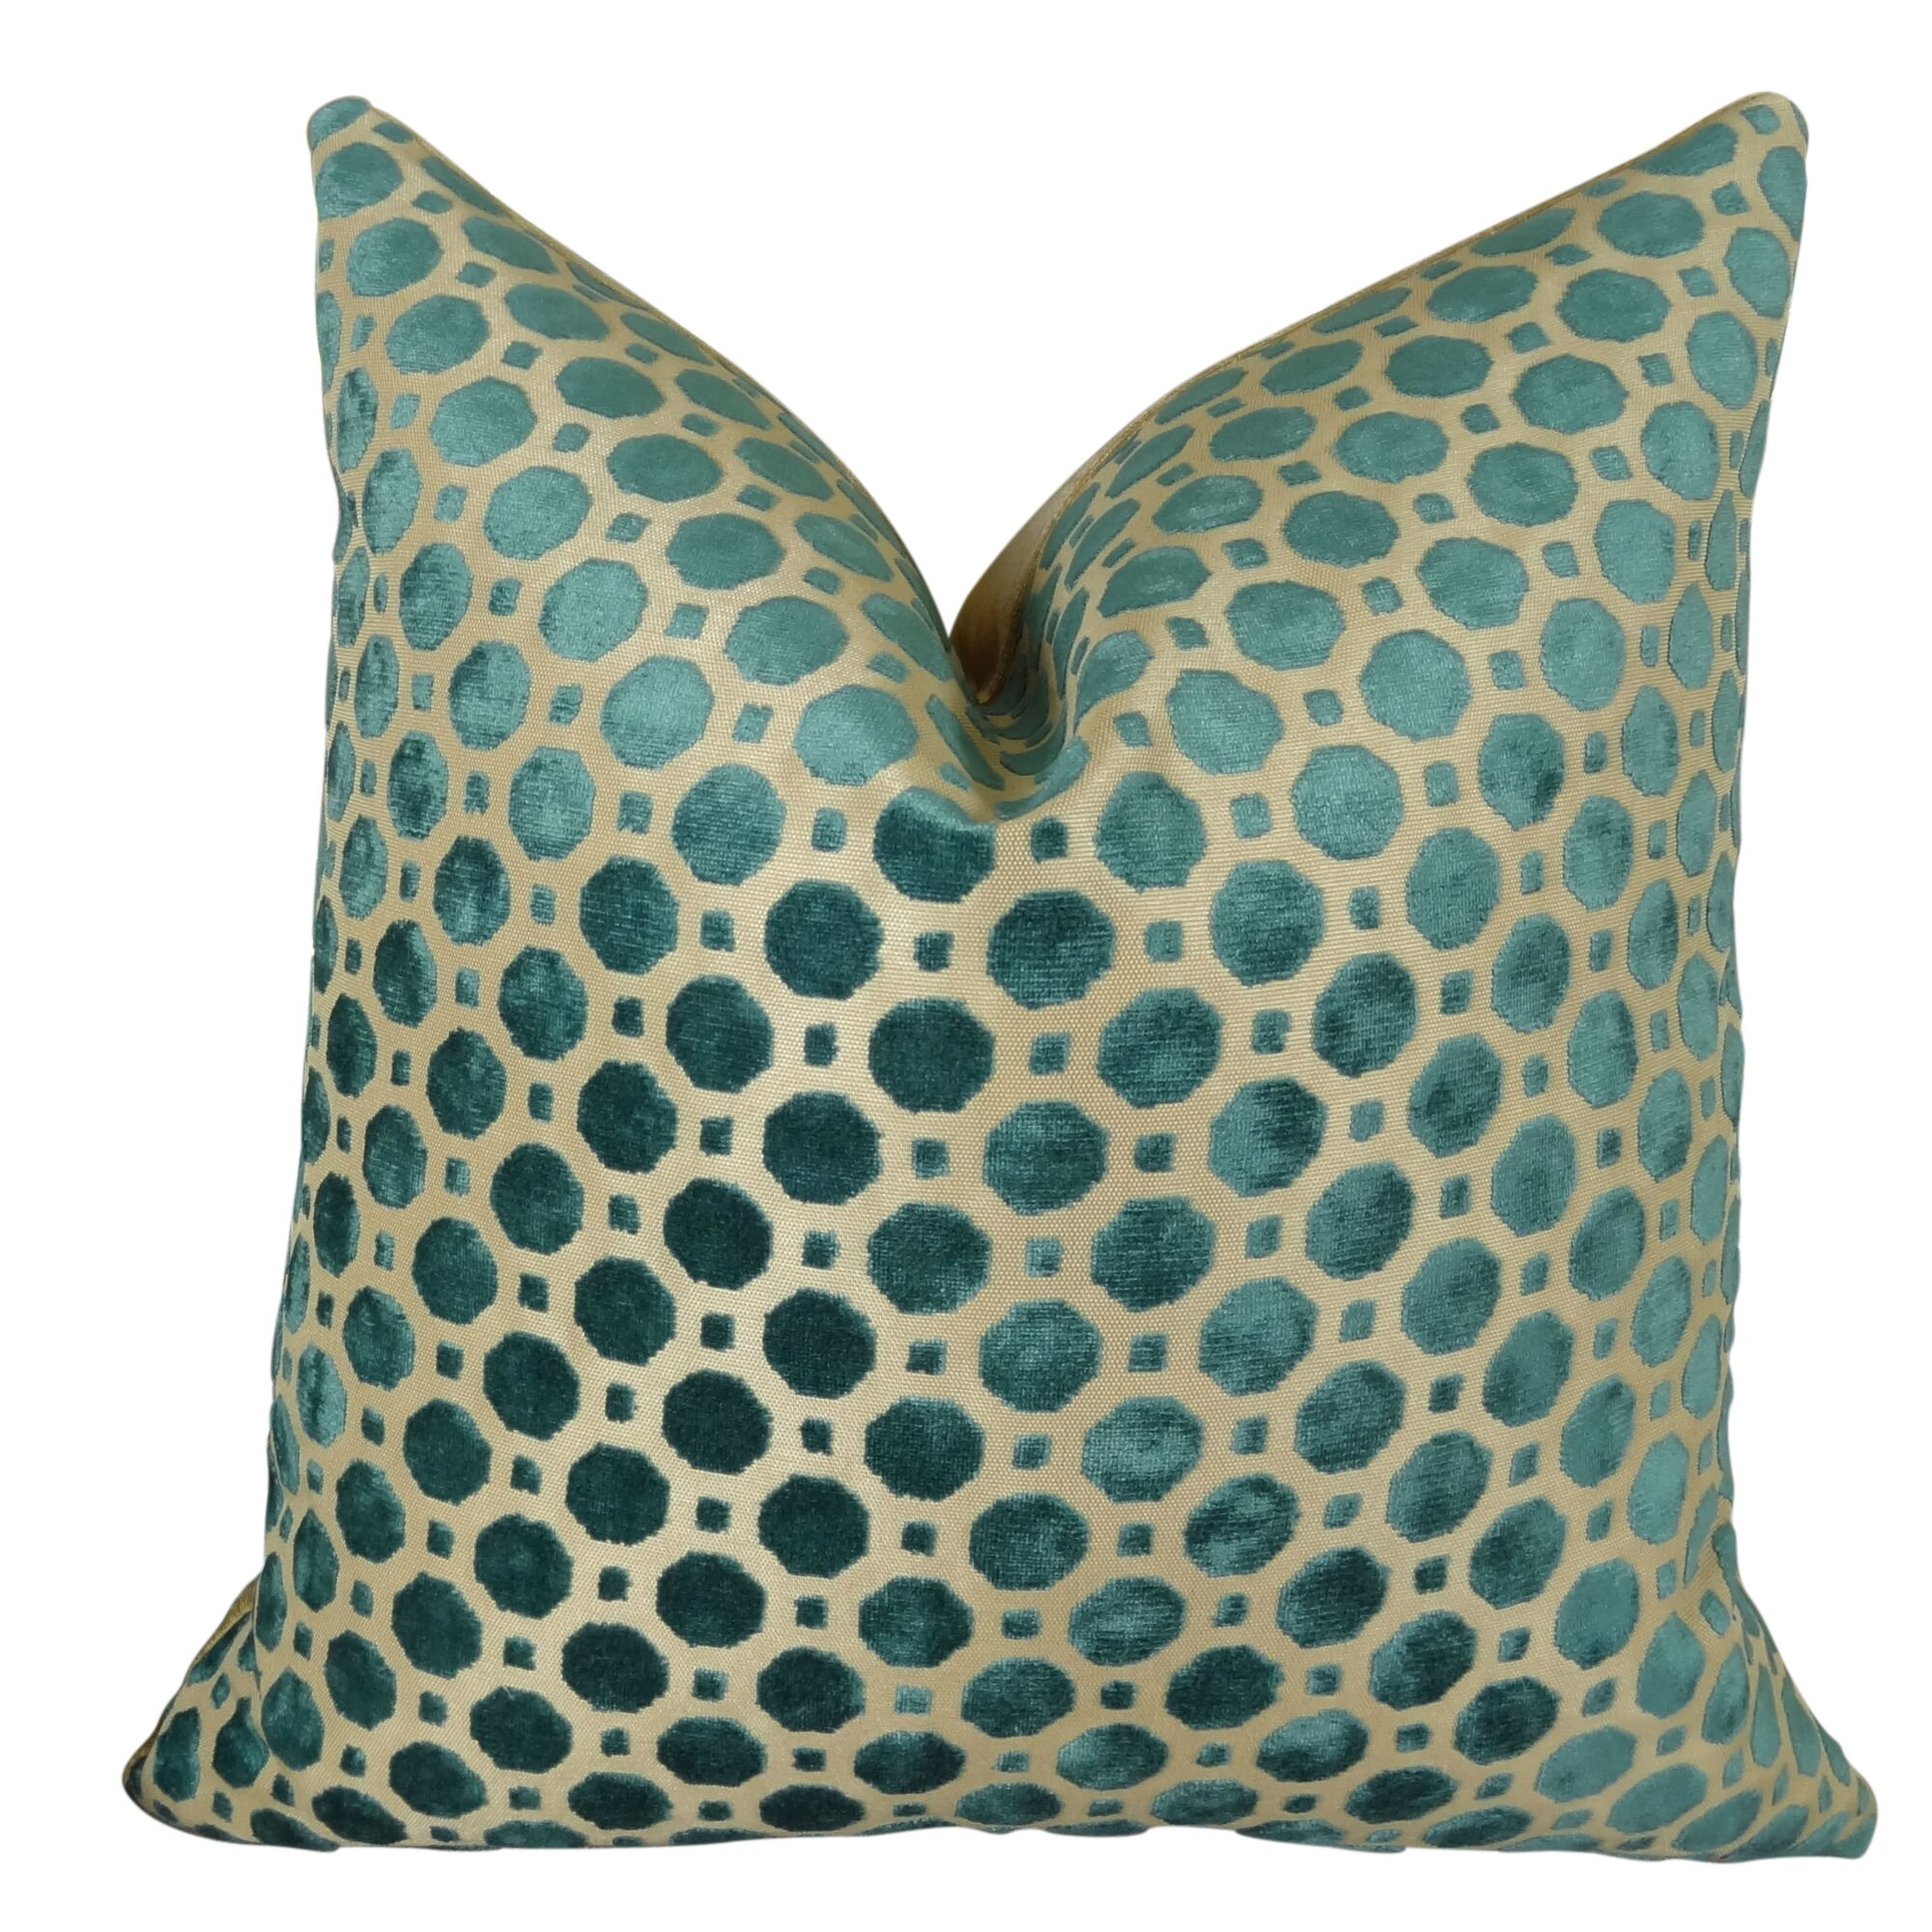 Throw Pillows Velvet : Plutus Brands Velvet Double Sided Throw Pillow Wayfair